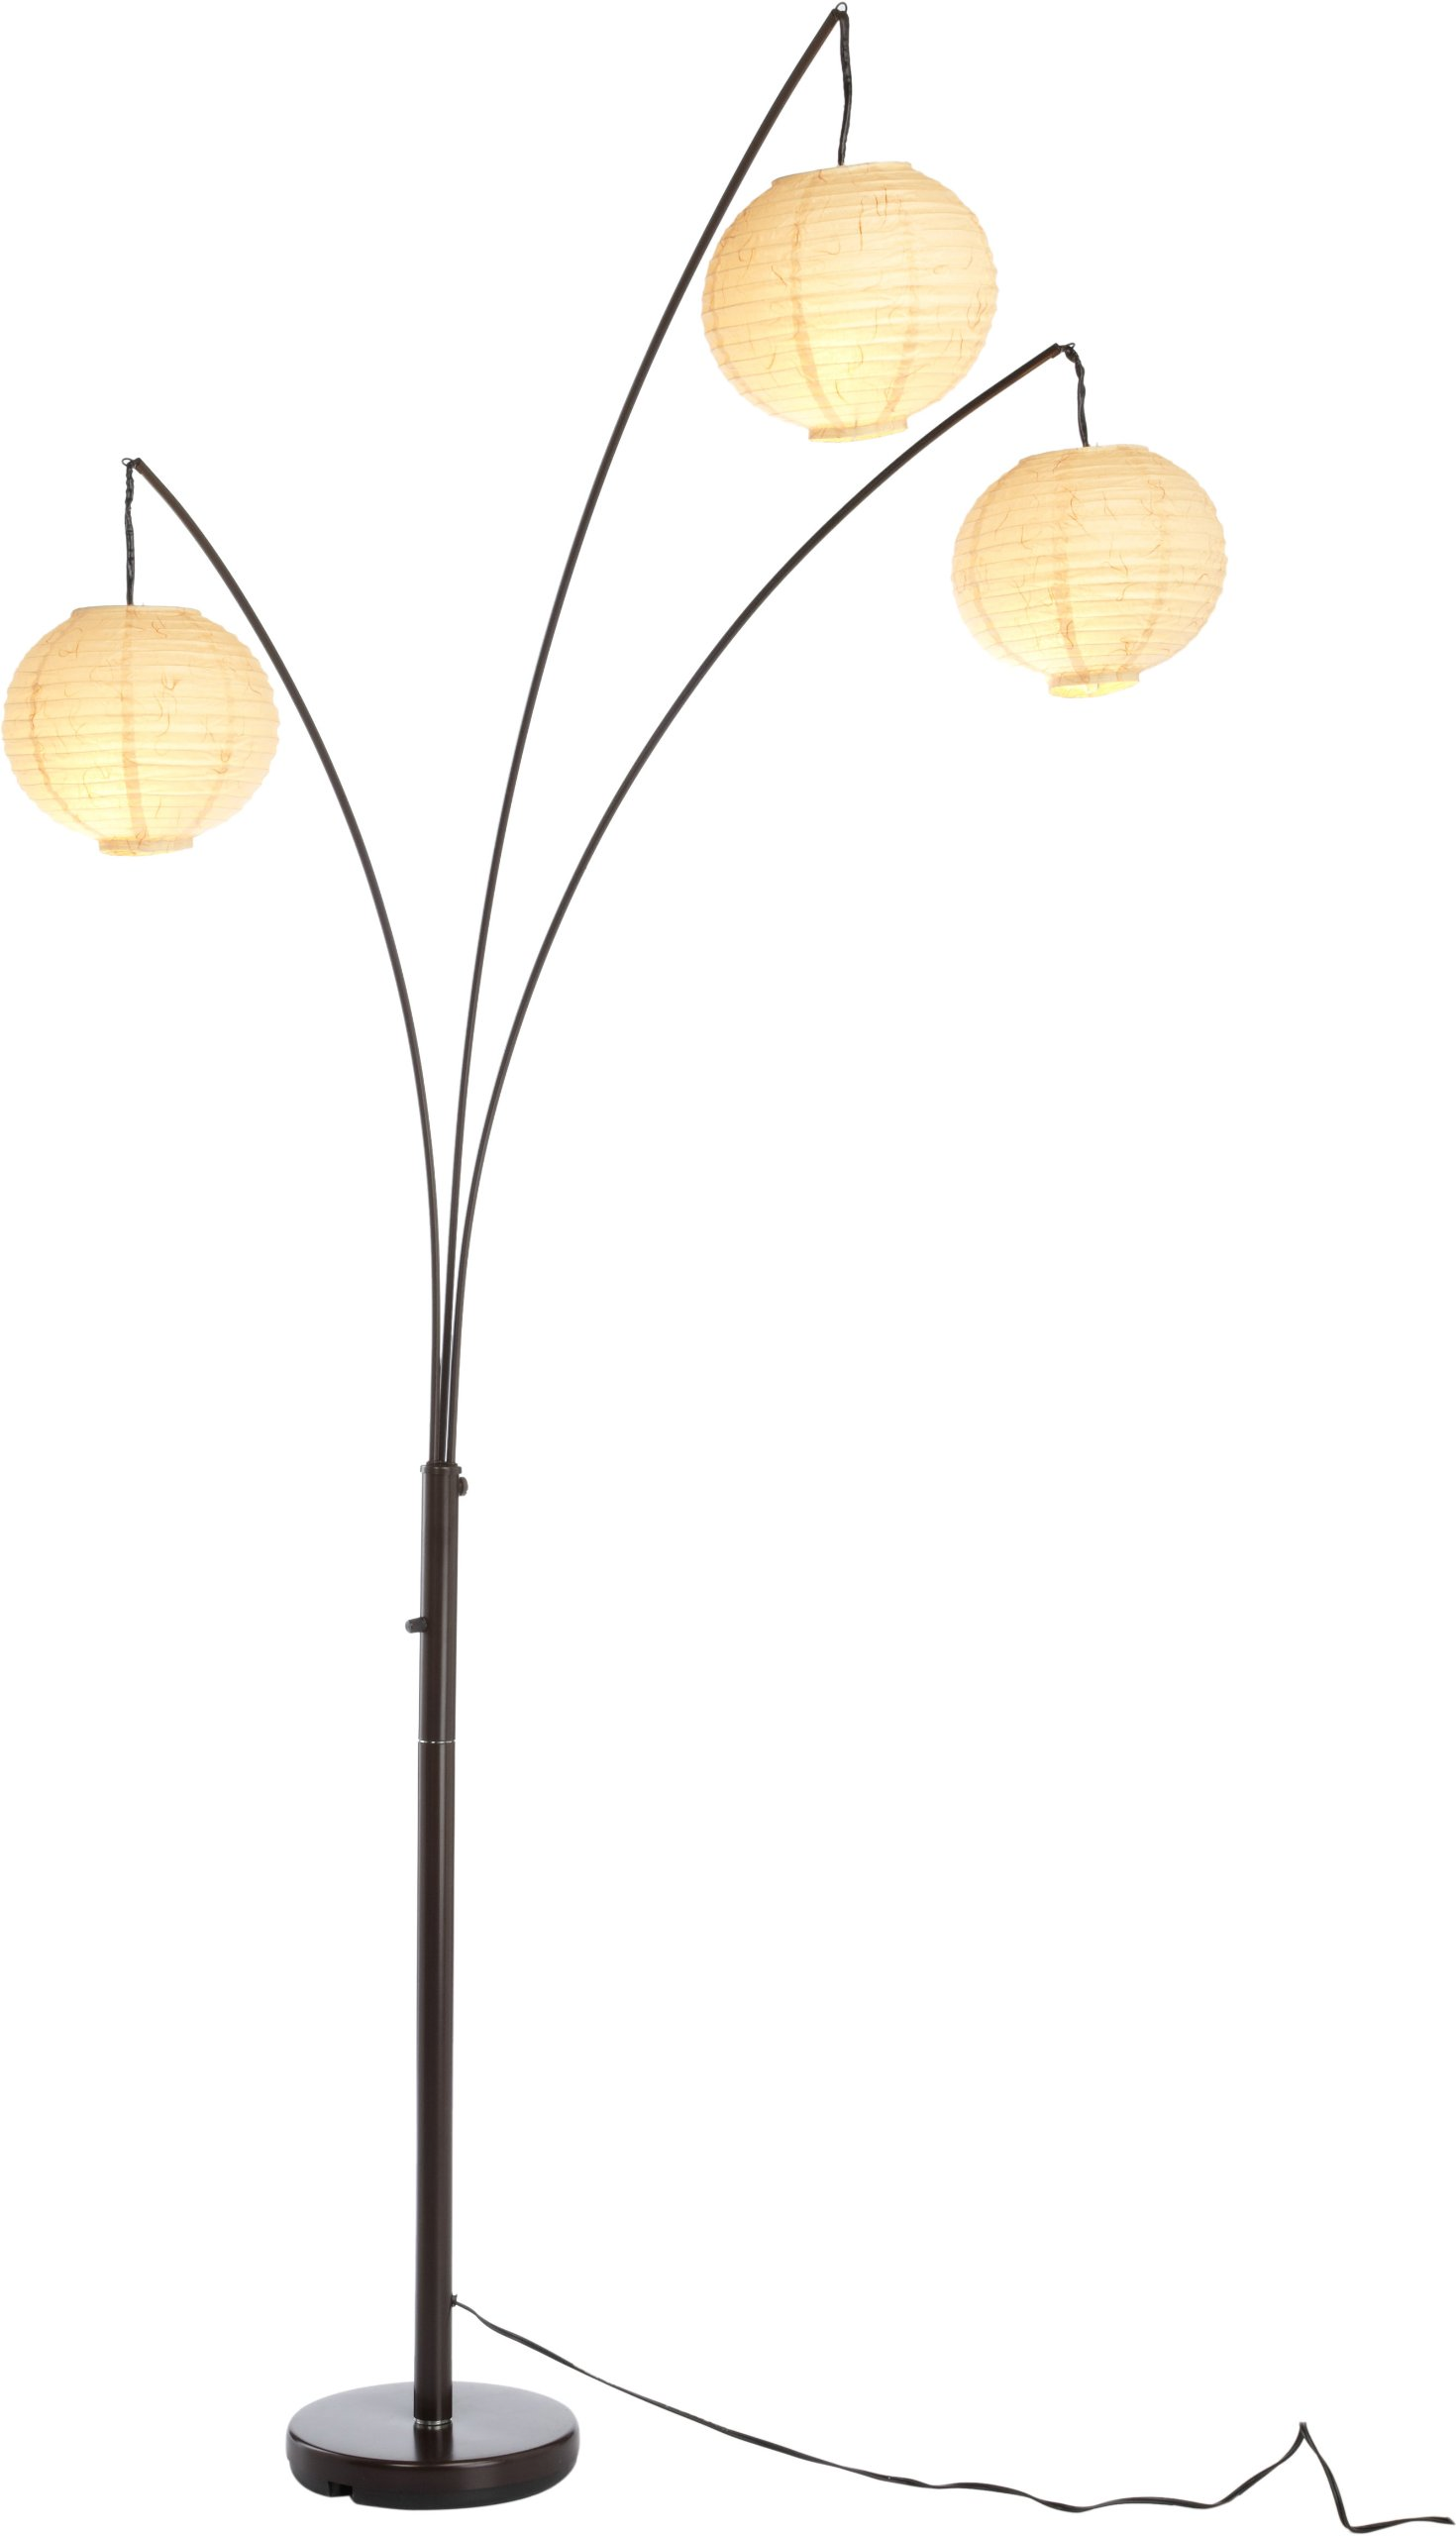 Adesso 4101-26 Spheres 82'' Arc 3-Light Floor Lamp with Rice-Paper Shades, Antique Bronze, Smart Outlet Compatible